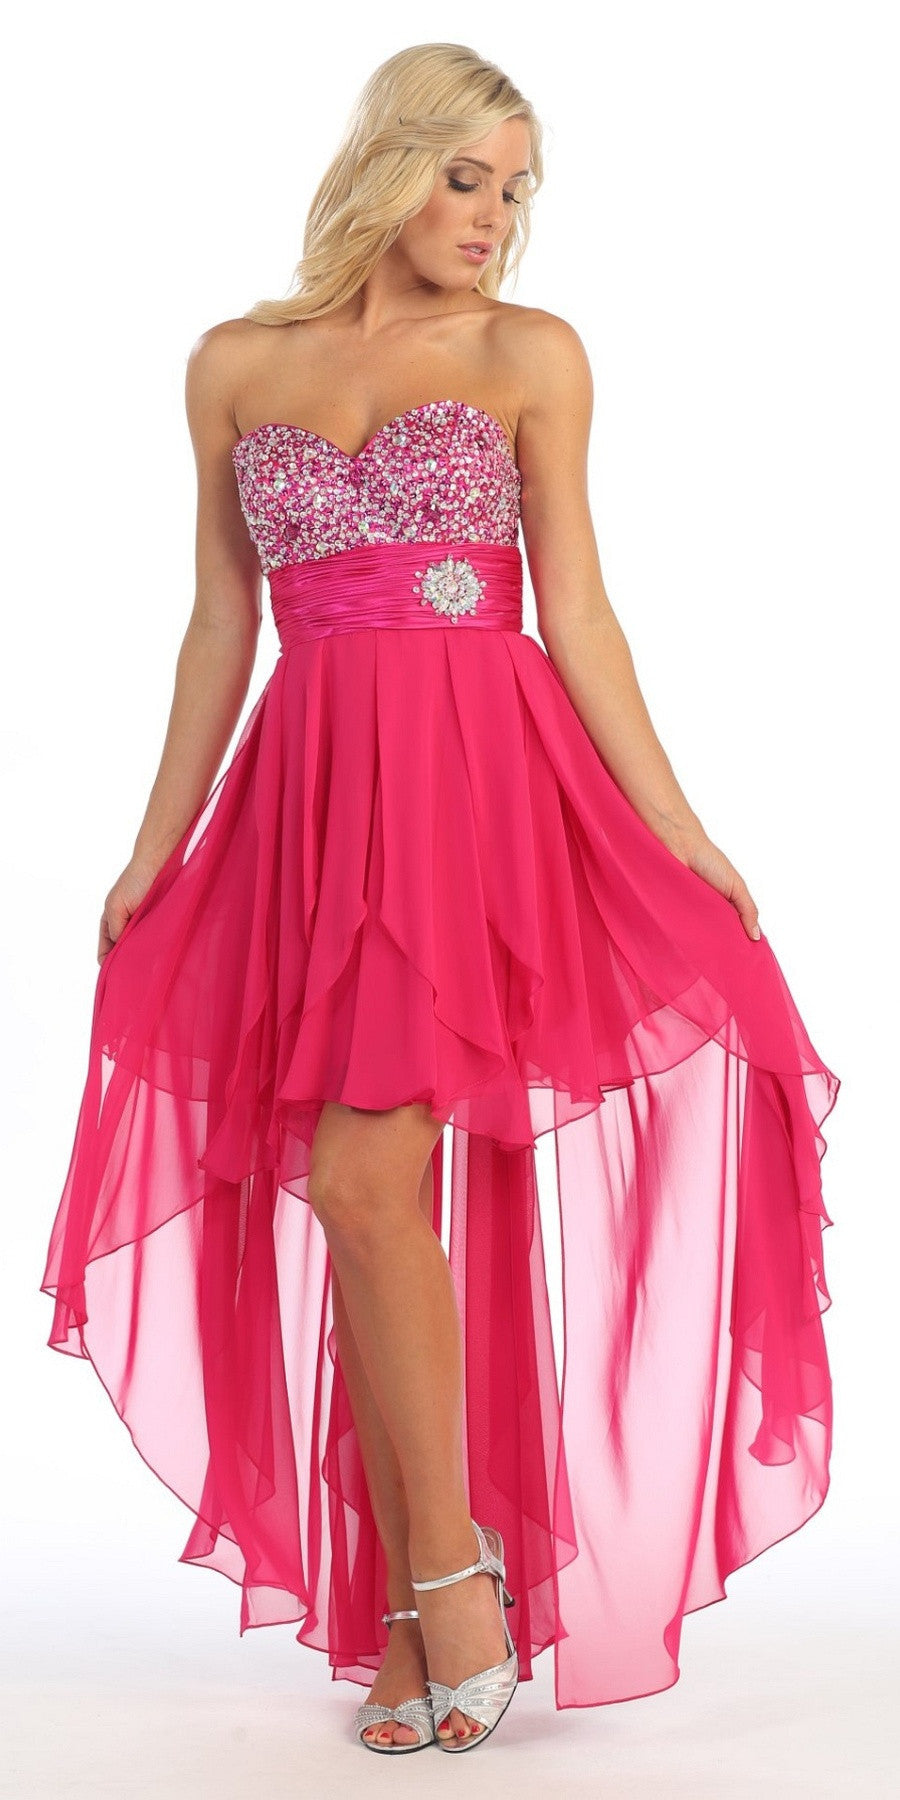 High Low Homecoming Fuchsia Dress Beads Sequins Asymmetrical Skirt - DiscountDressShop